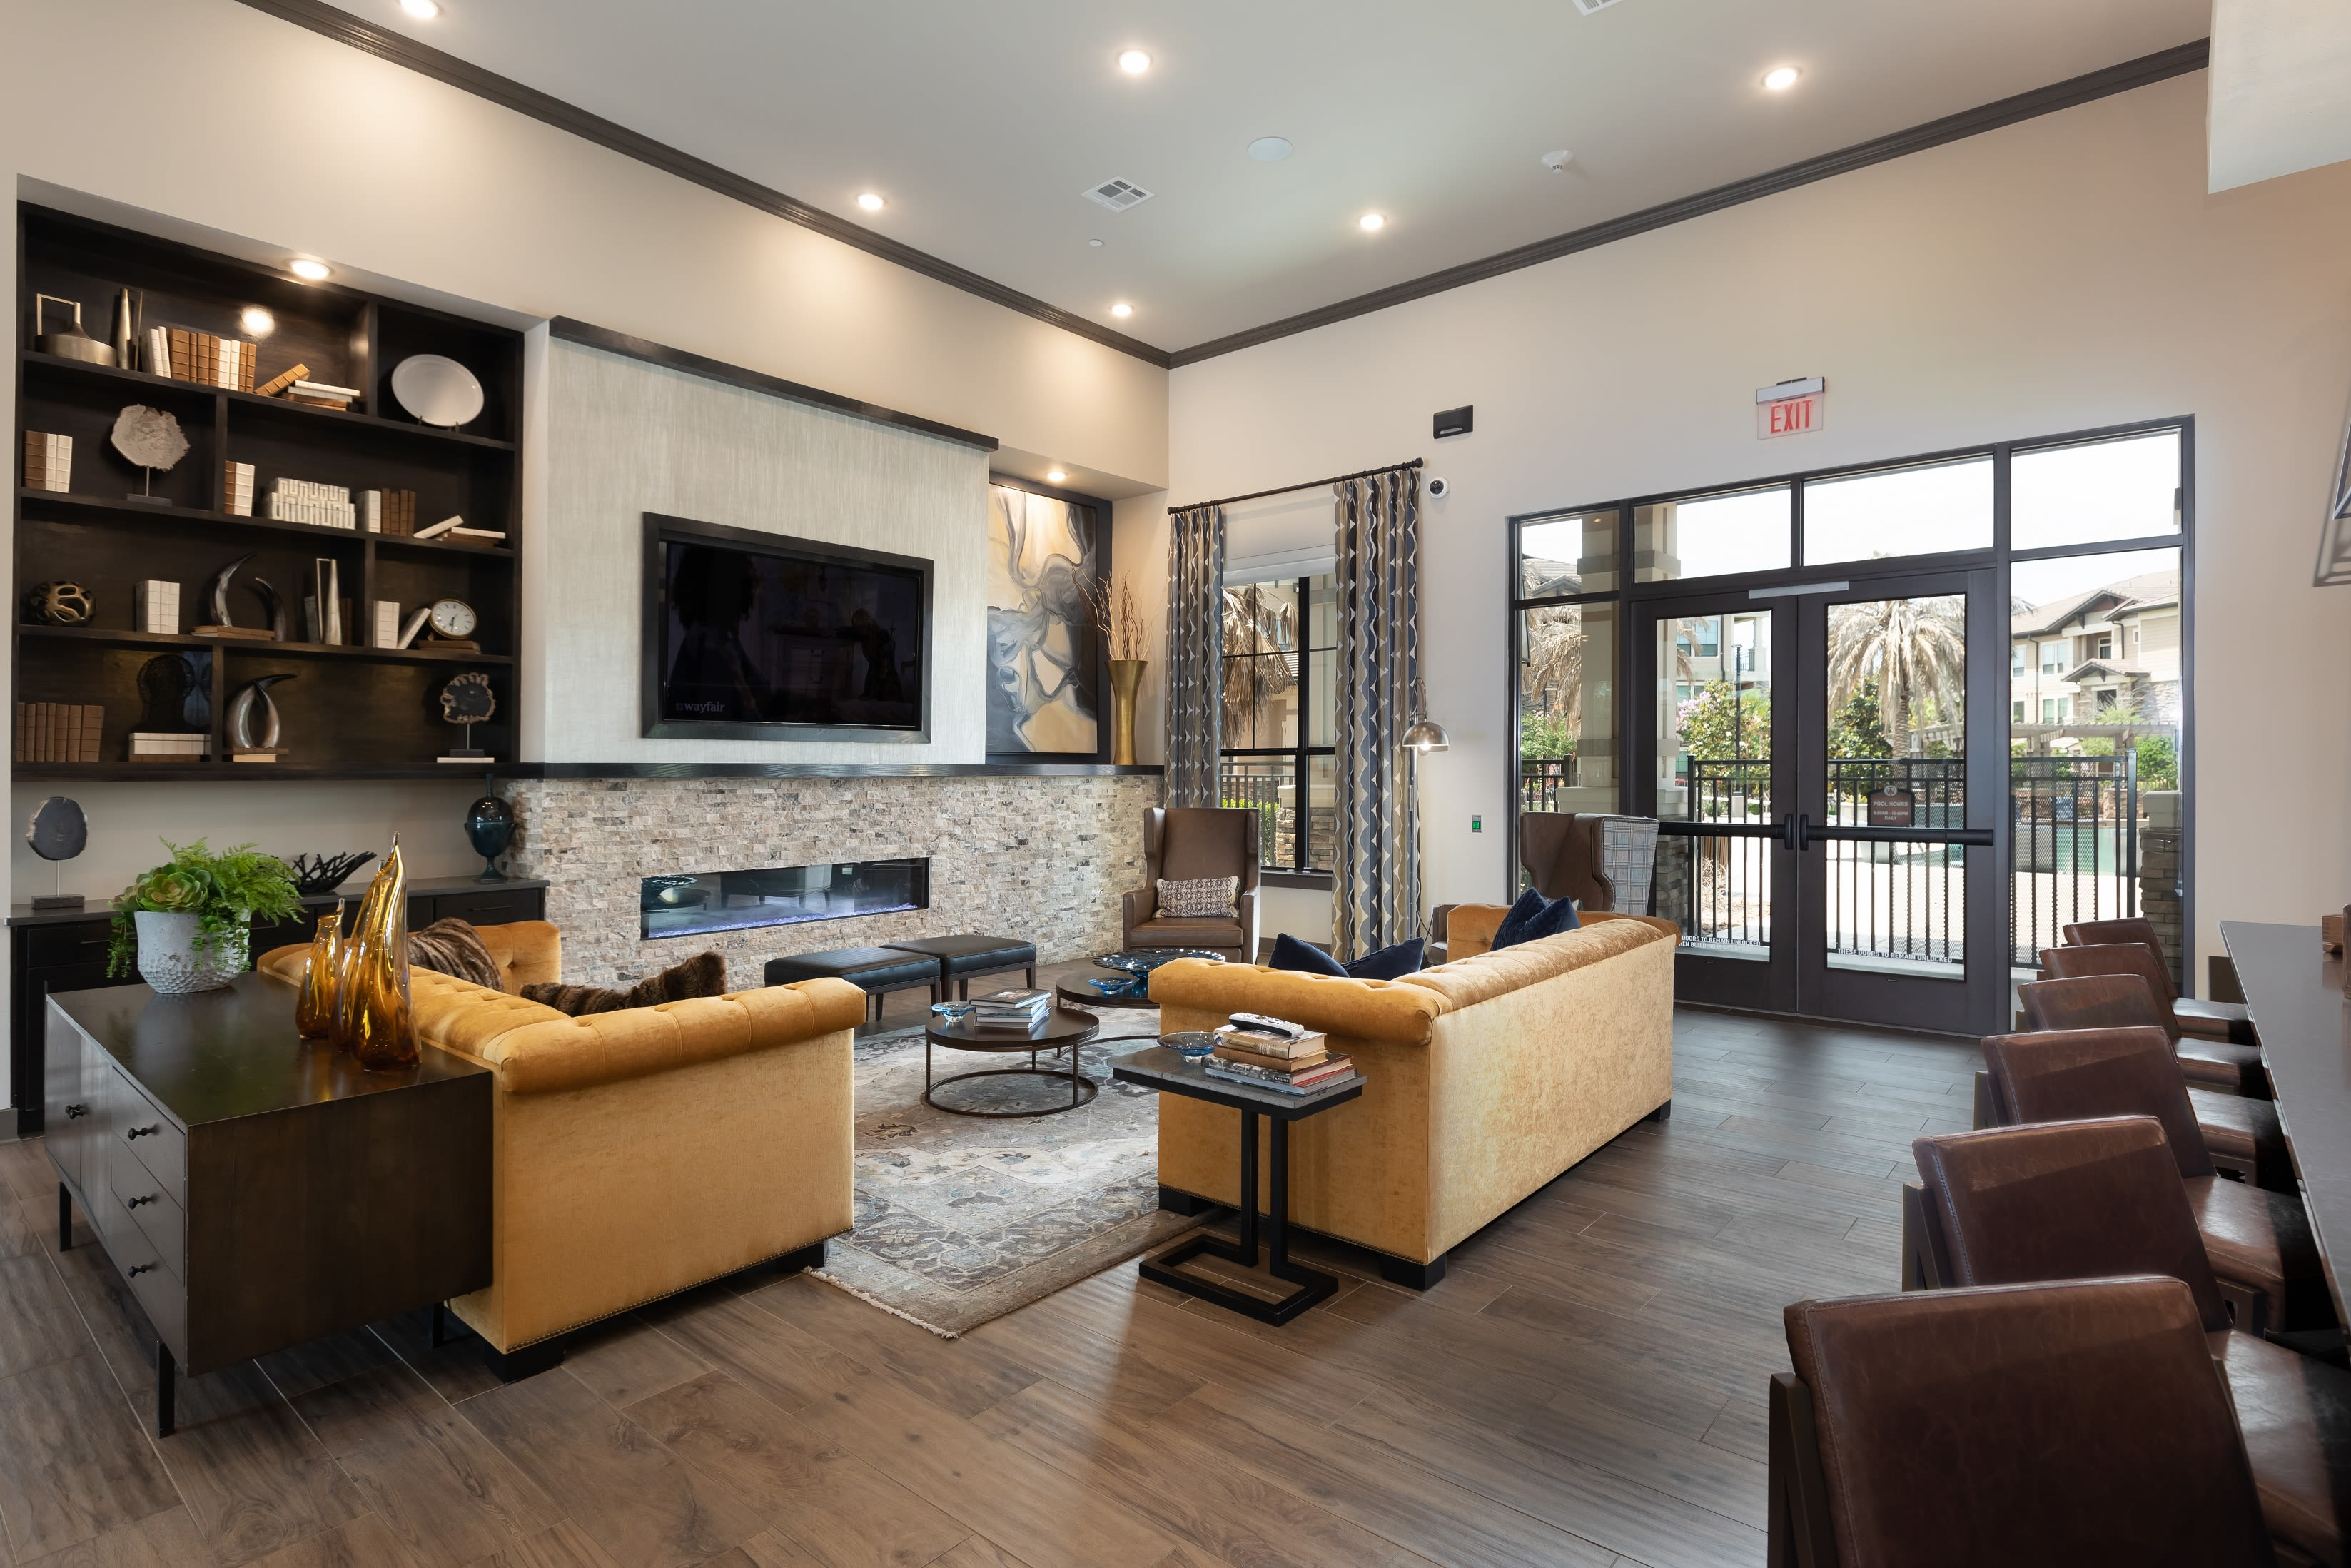 Waterford Trails apartments in Spring, Texas